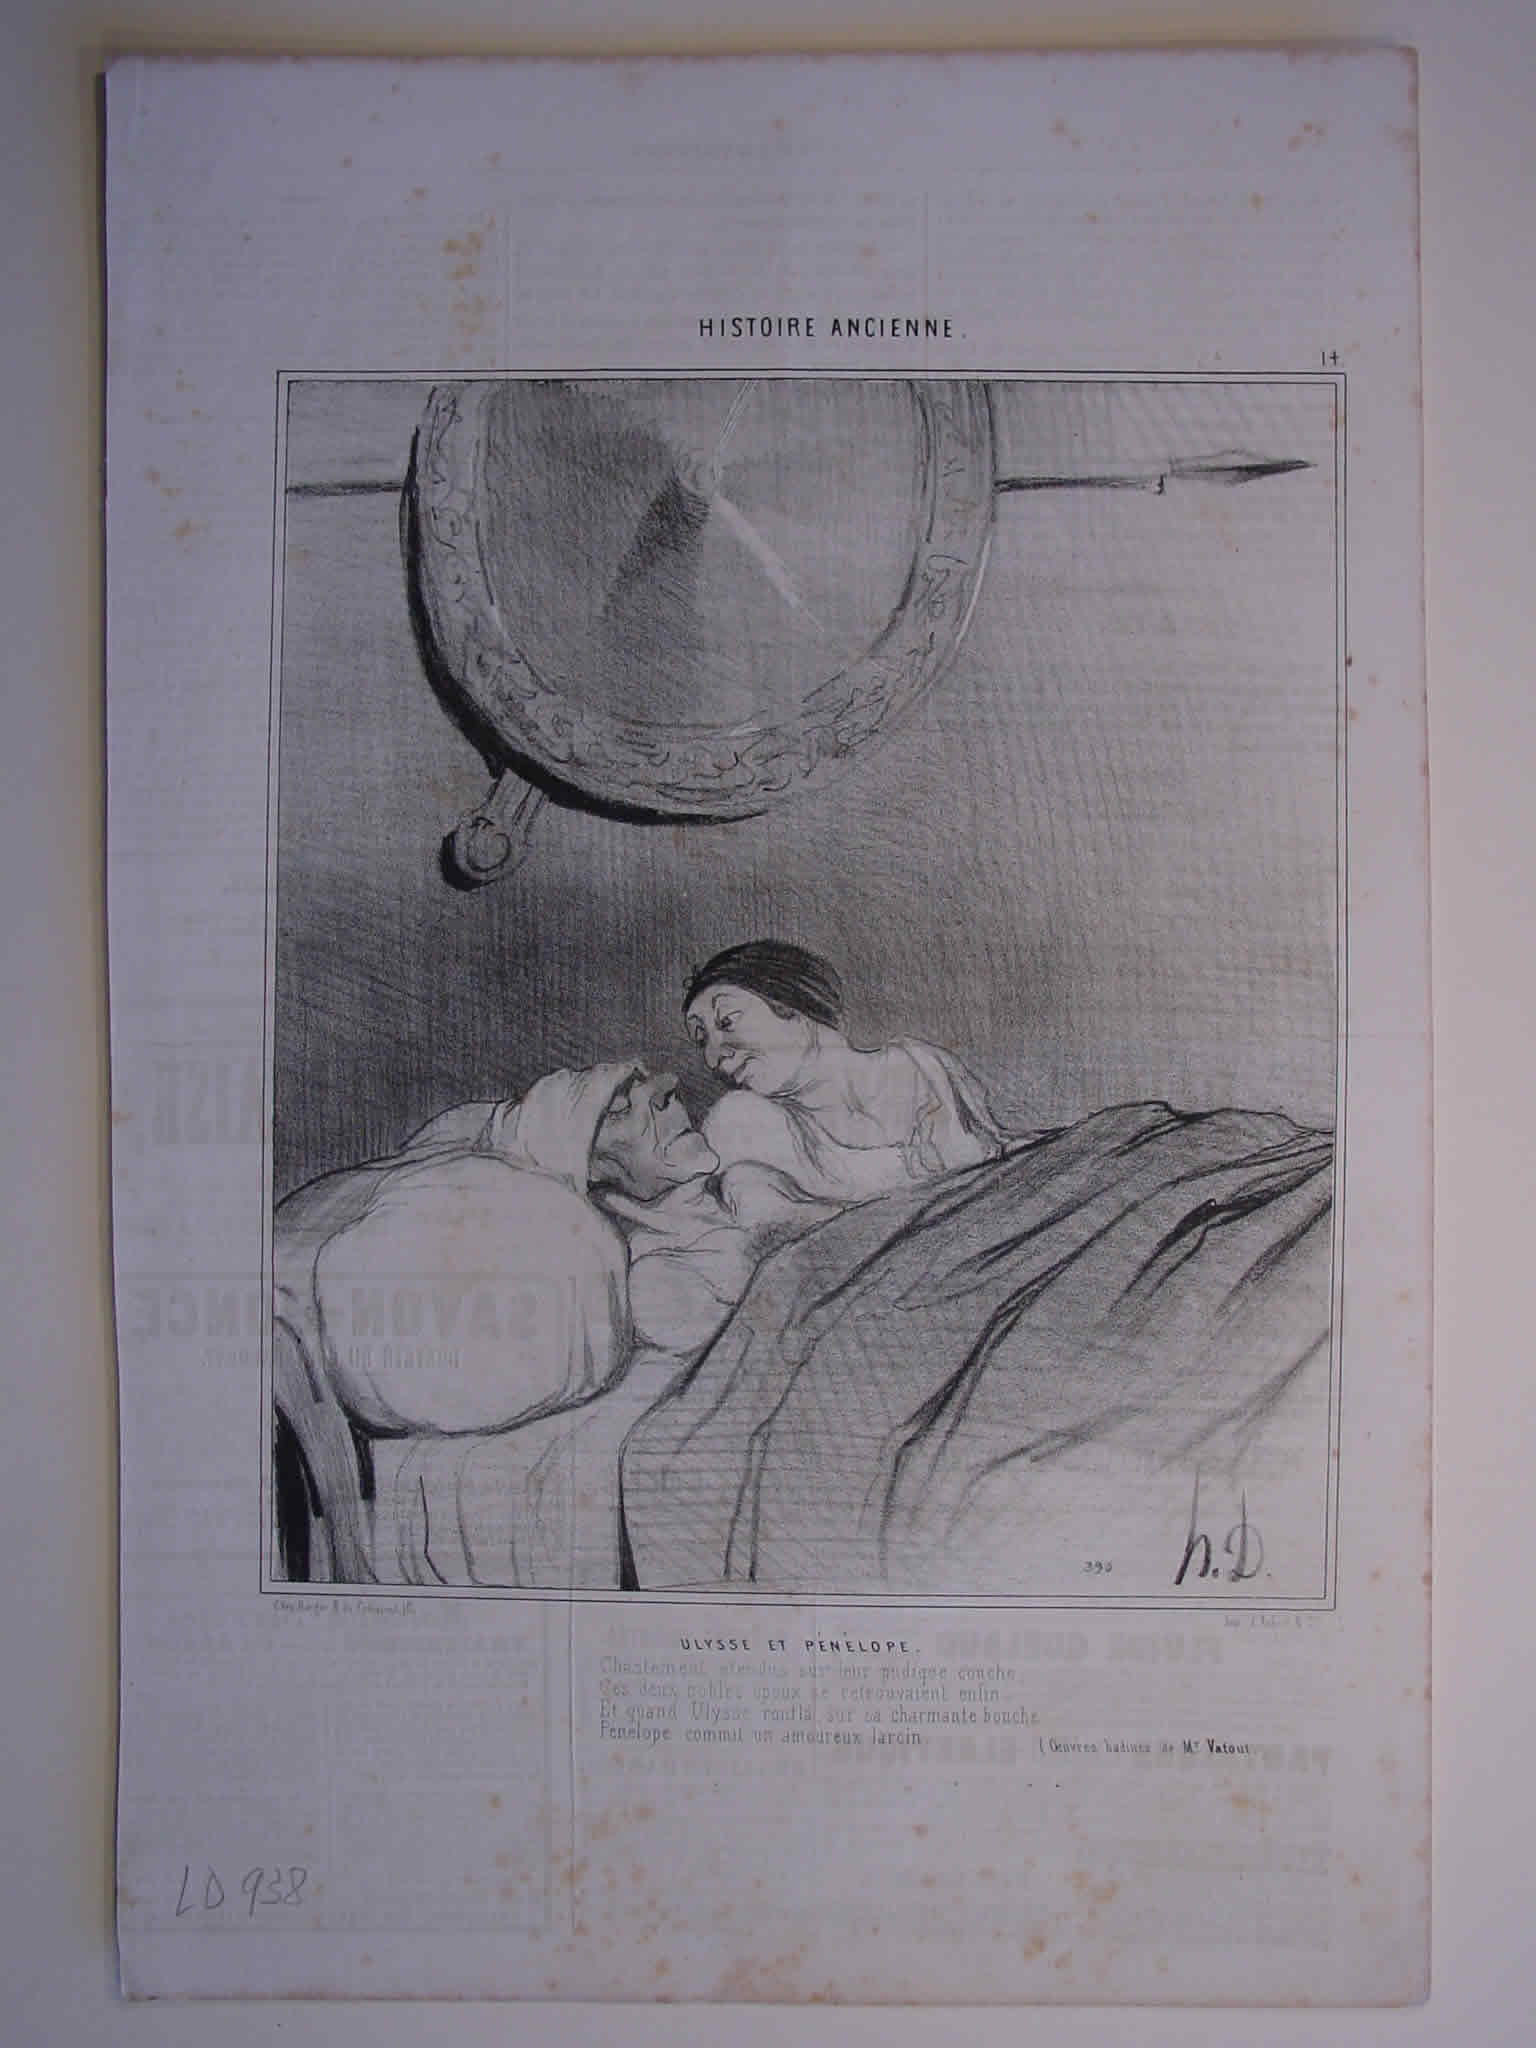 Honore Daumier, DR938